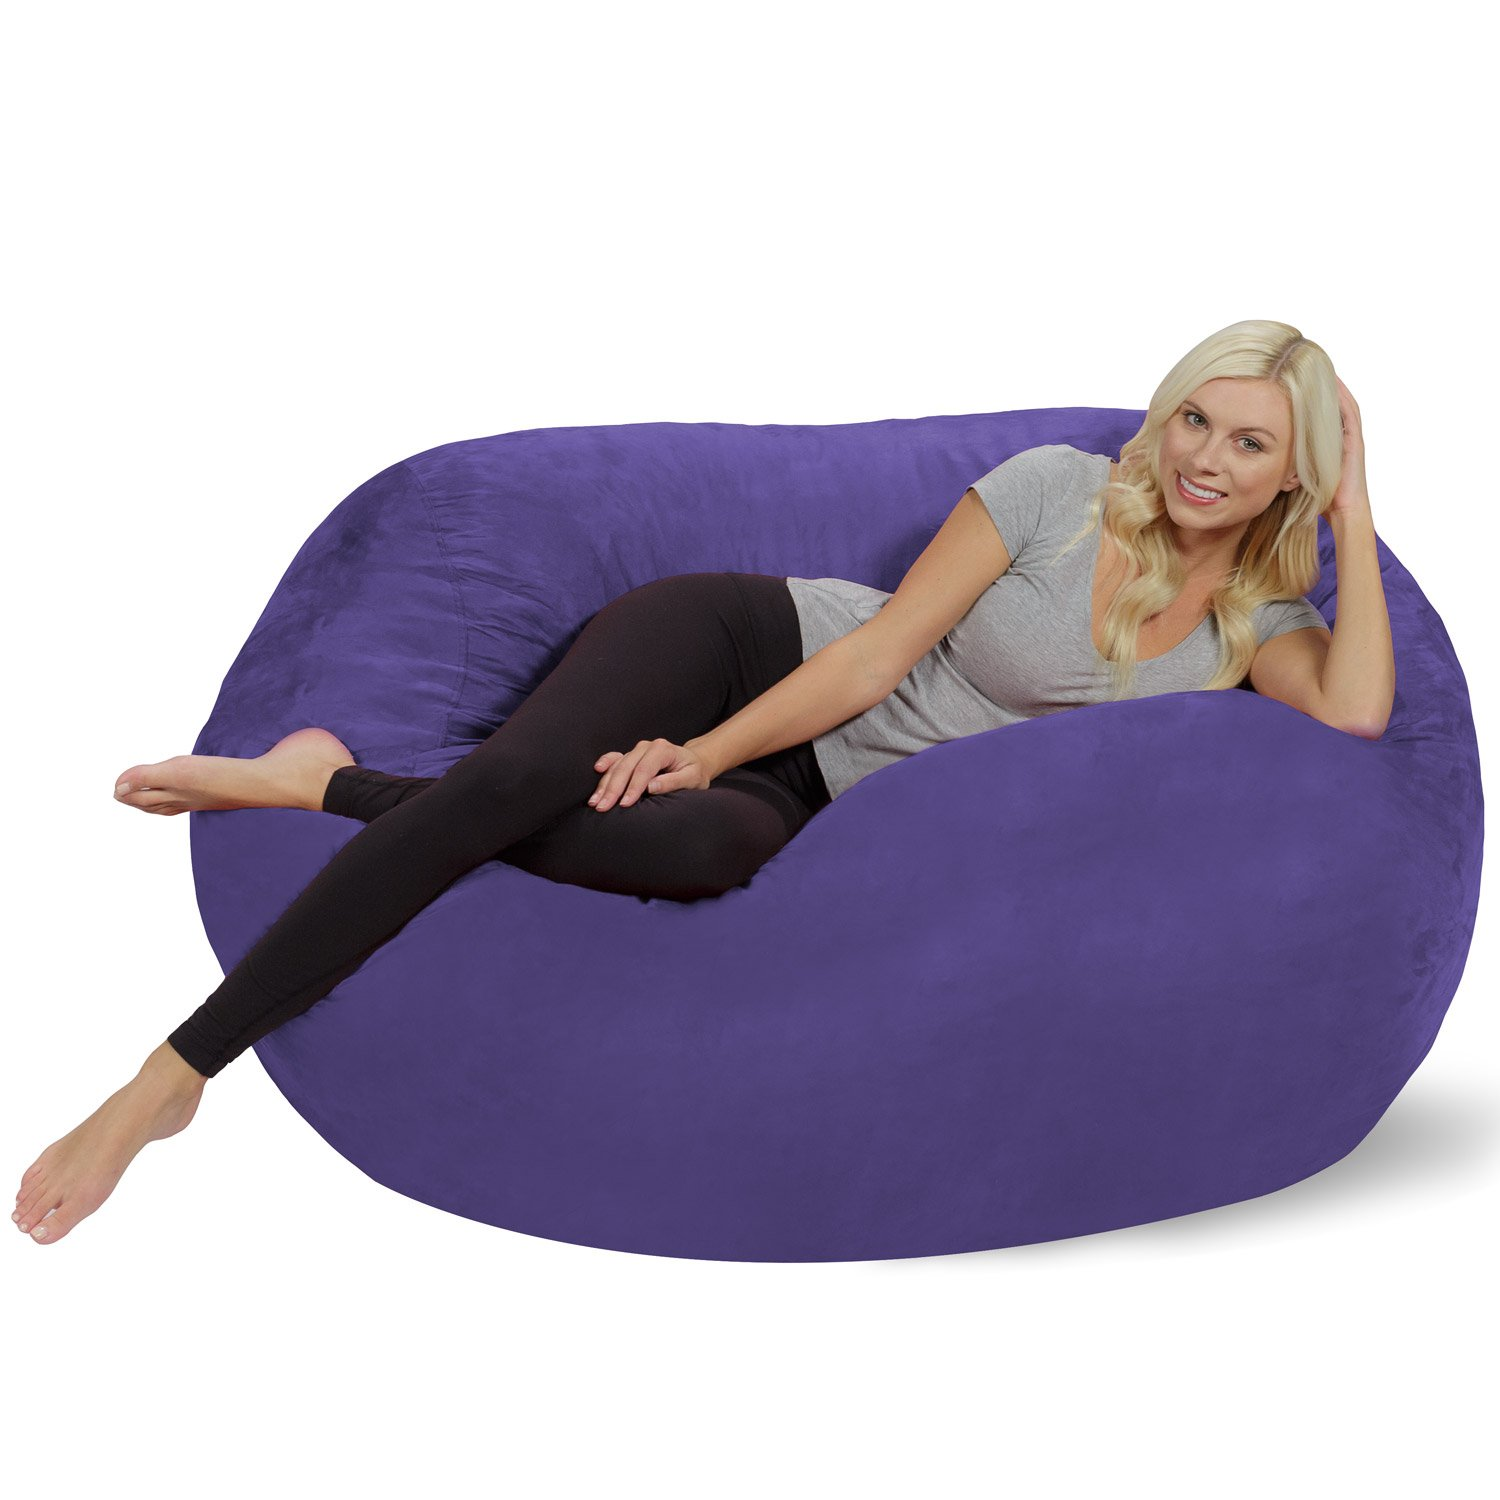 Chill Sack Bean Bag Chair: Huge 5 Memory Foam Furniture Bag and Large Lounger - Big Sofa with Soft Micro Fiber Cover - Purple